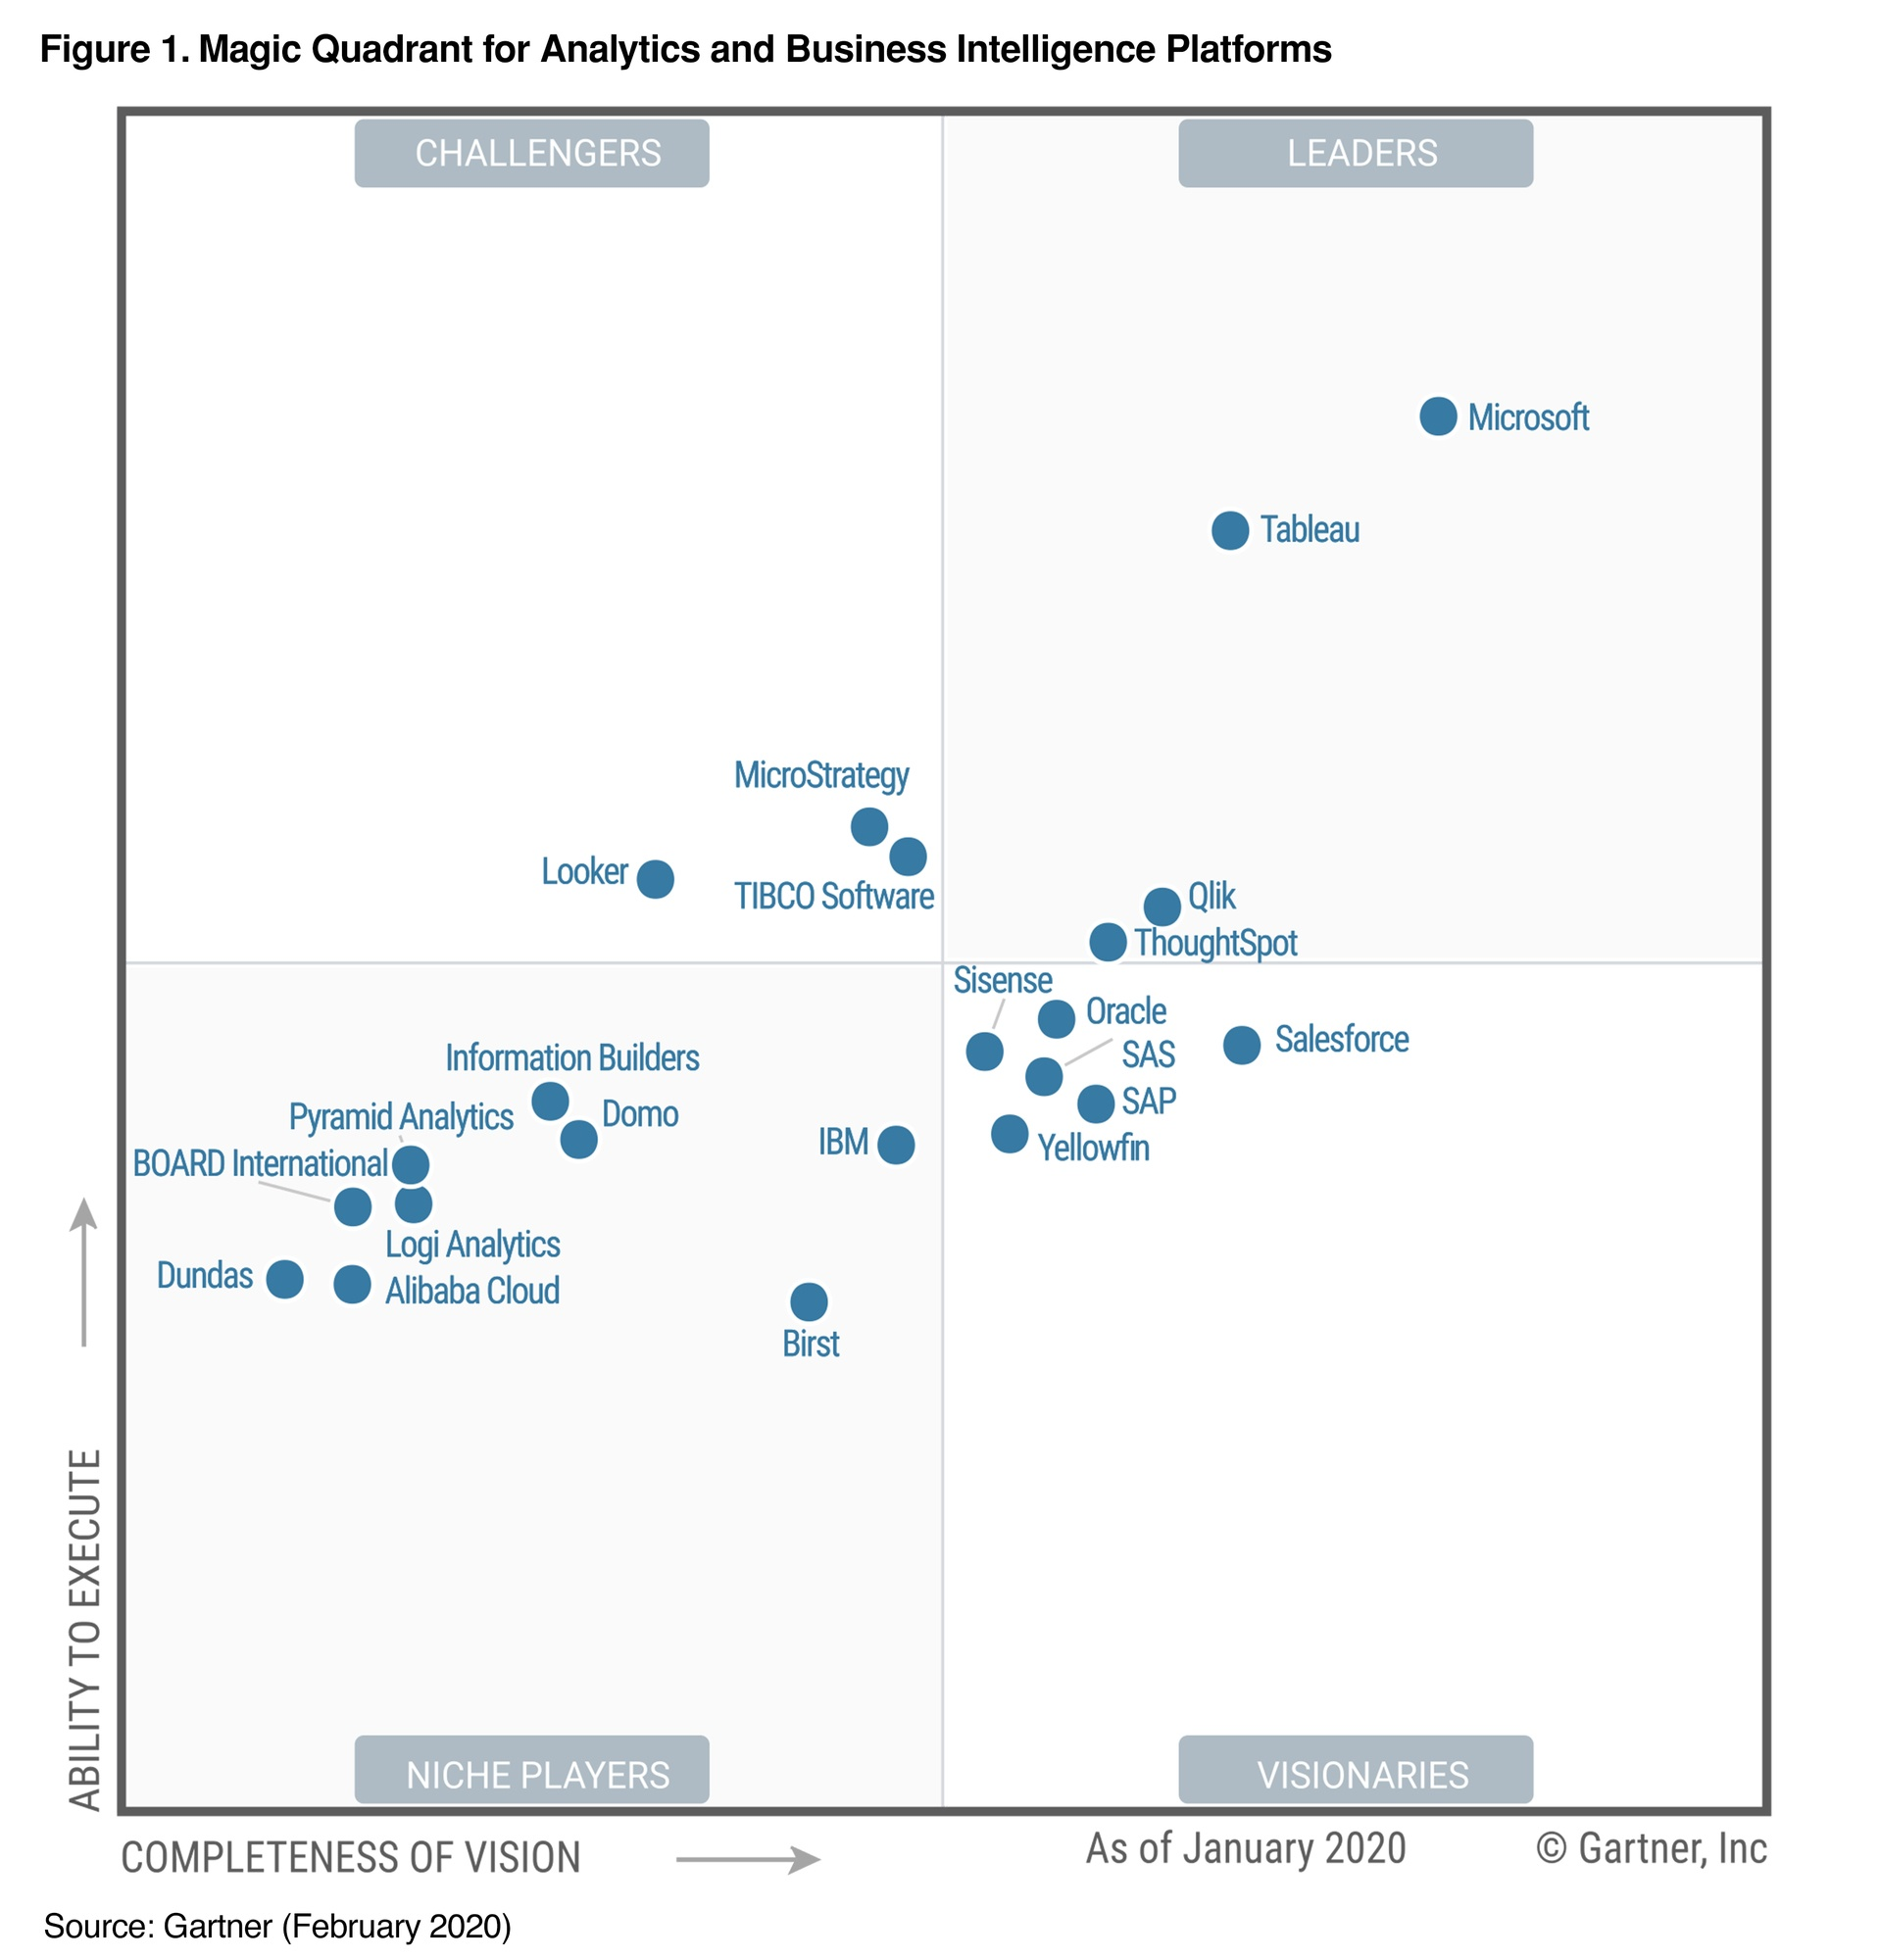 Tableau is positioned a Leader in the 2020 Gartner Magic Quadrant for Analytics and Business Intelligence Platforms for its completeness of vision and ability to execute.